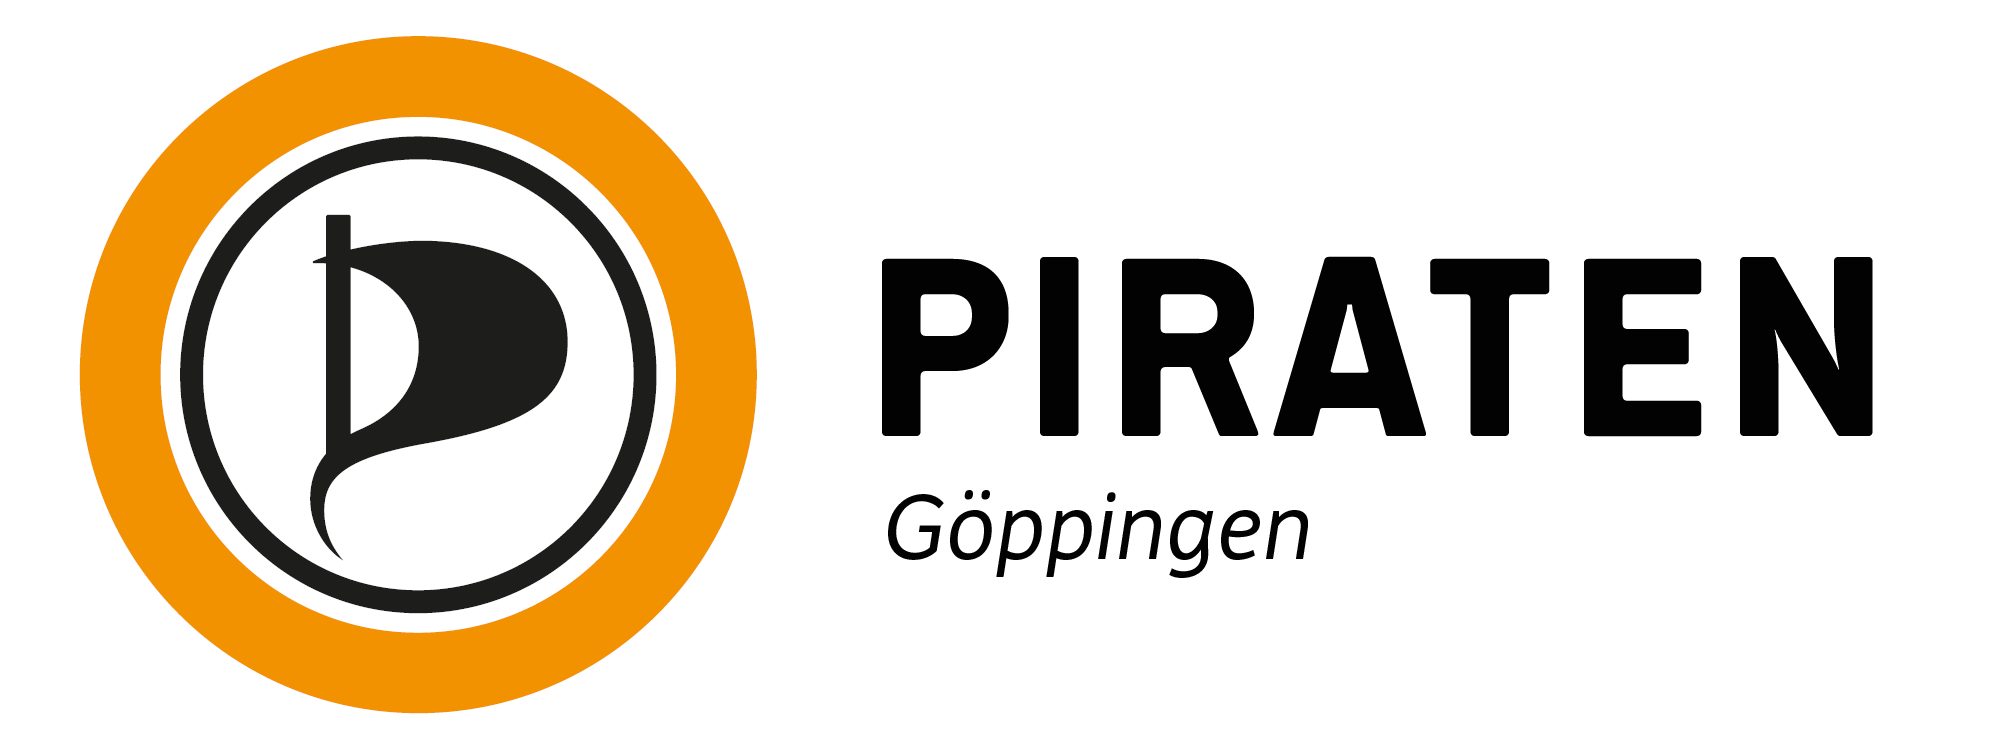 Piratenpartei Göppingen